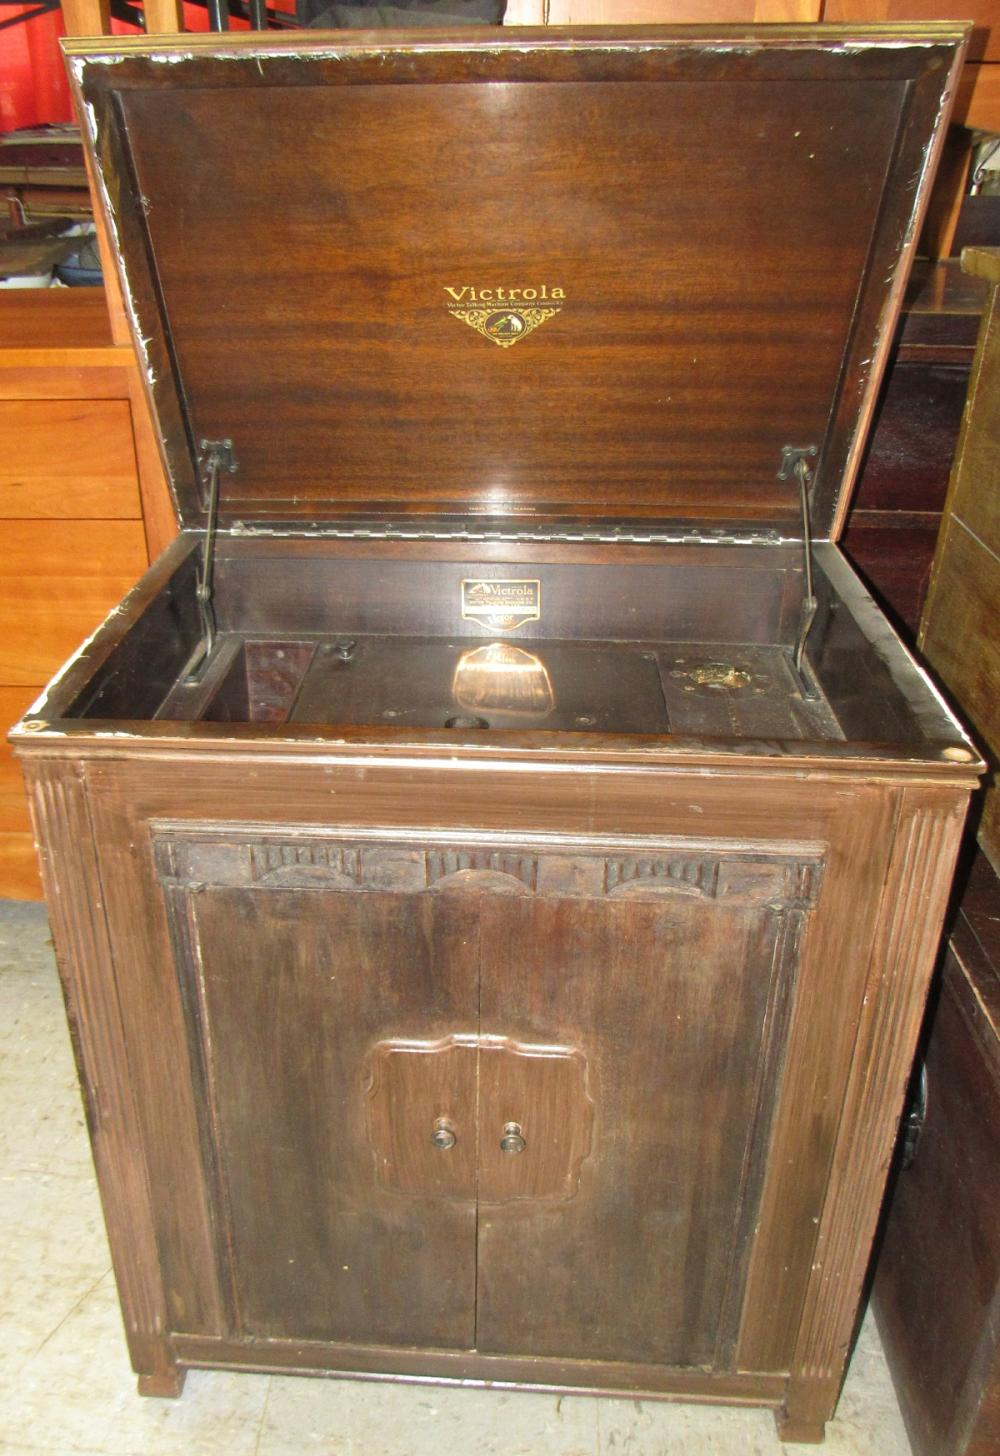 Vintage Victorola Cabinet, All Responsibility for Shipping will be the Successful Bidder. You must arrange for pickup directly or by a shipper within 7 days after sale.